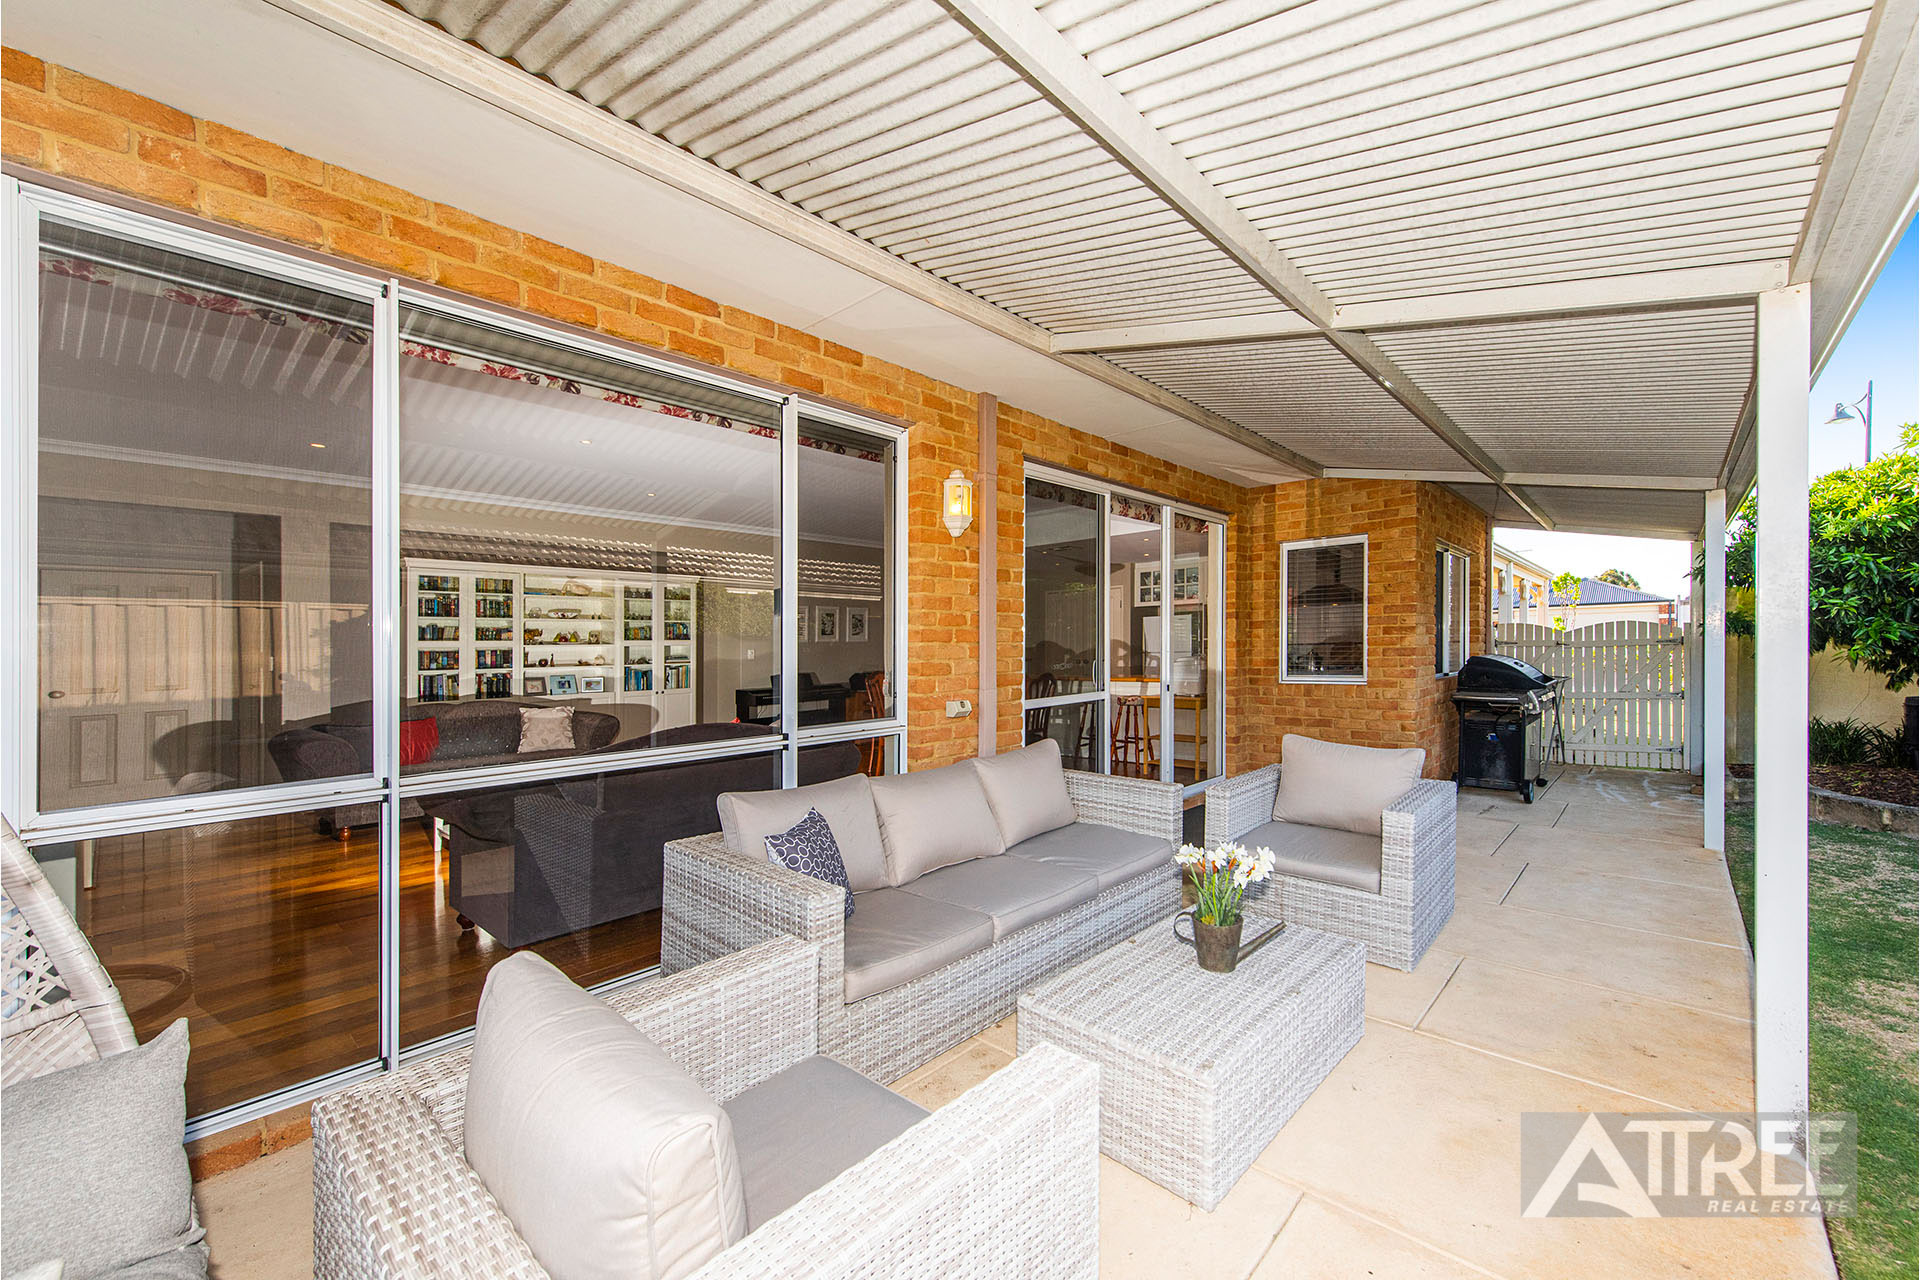 Property for sale in HARRISDALE, 3 Archer Brace : Attree Real Estate